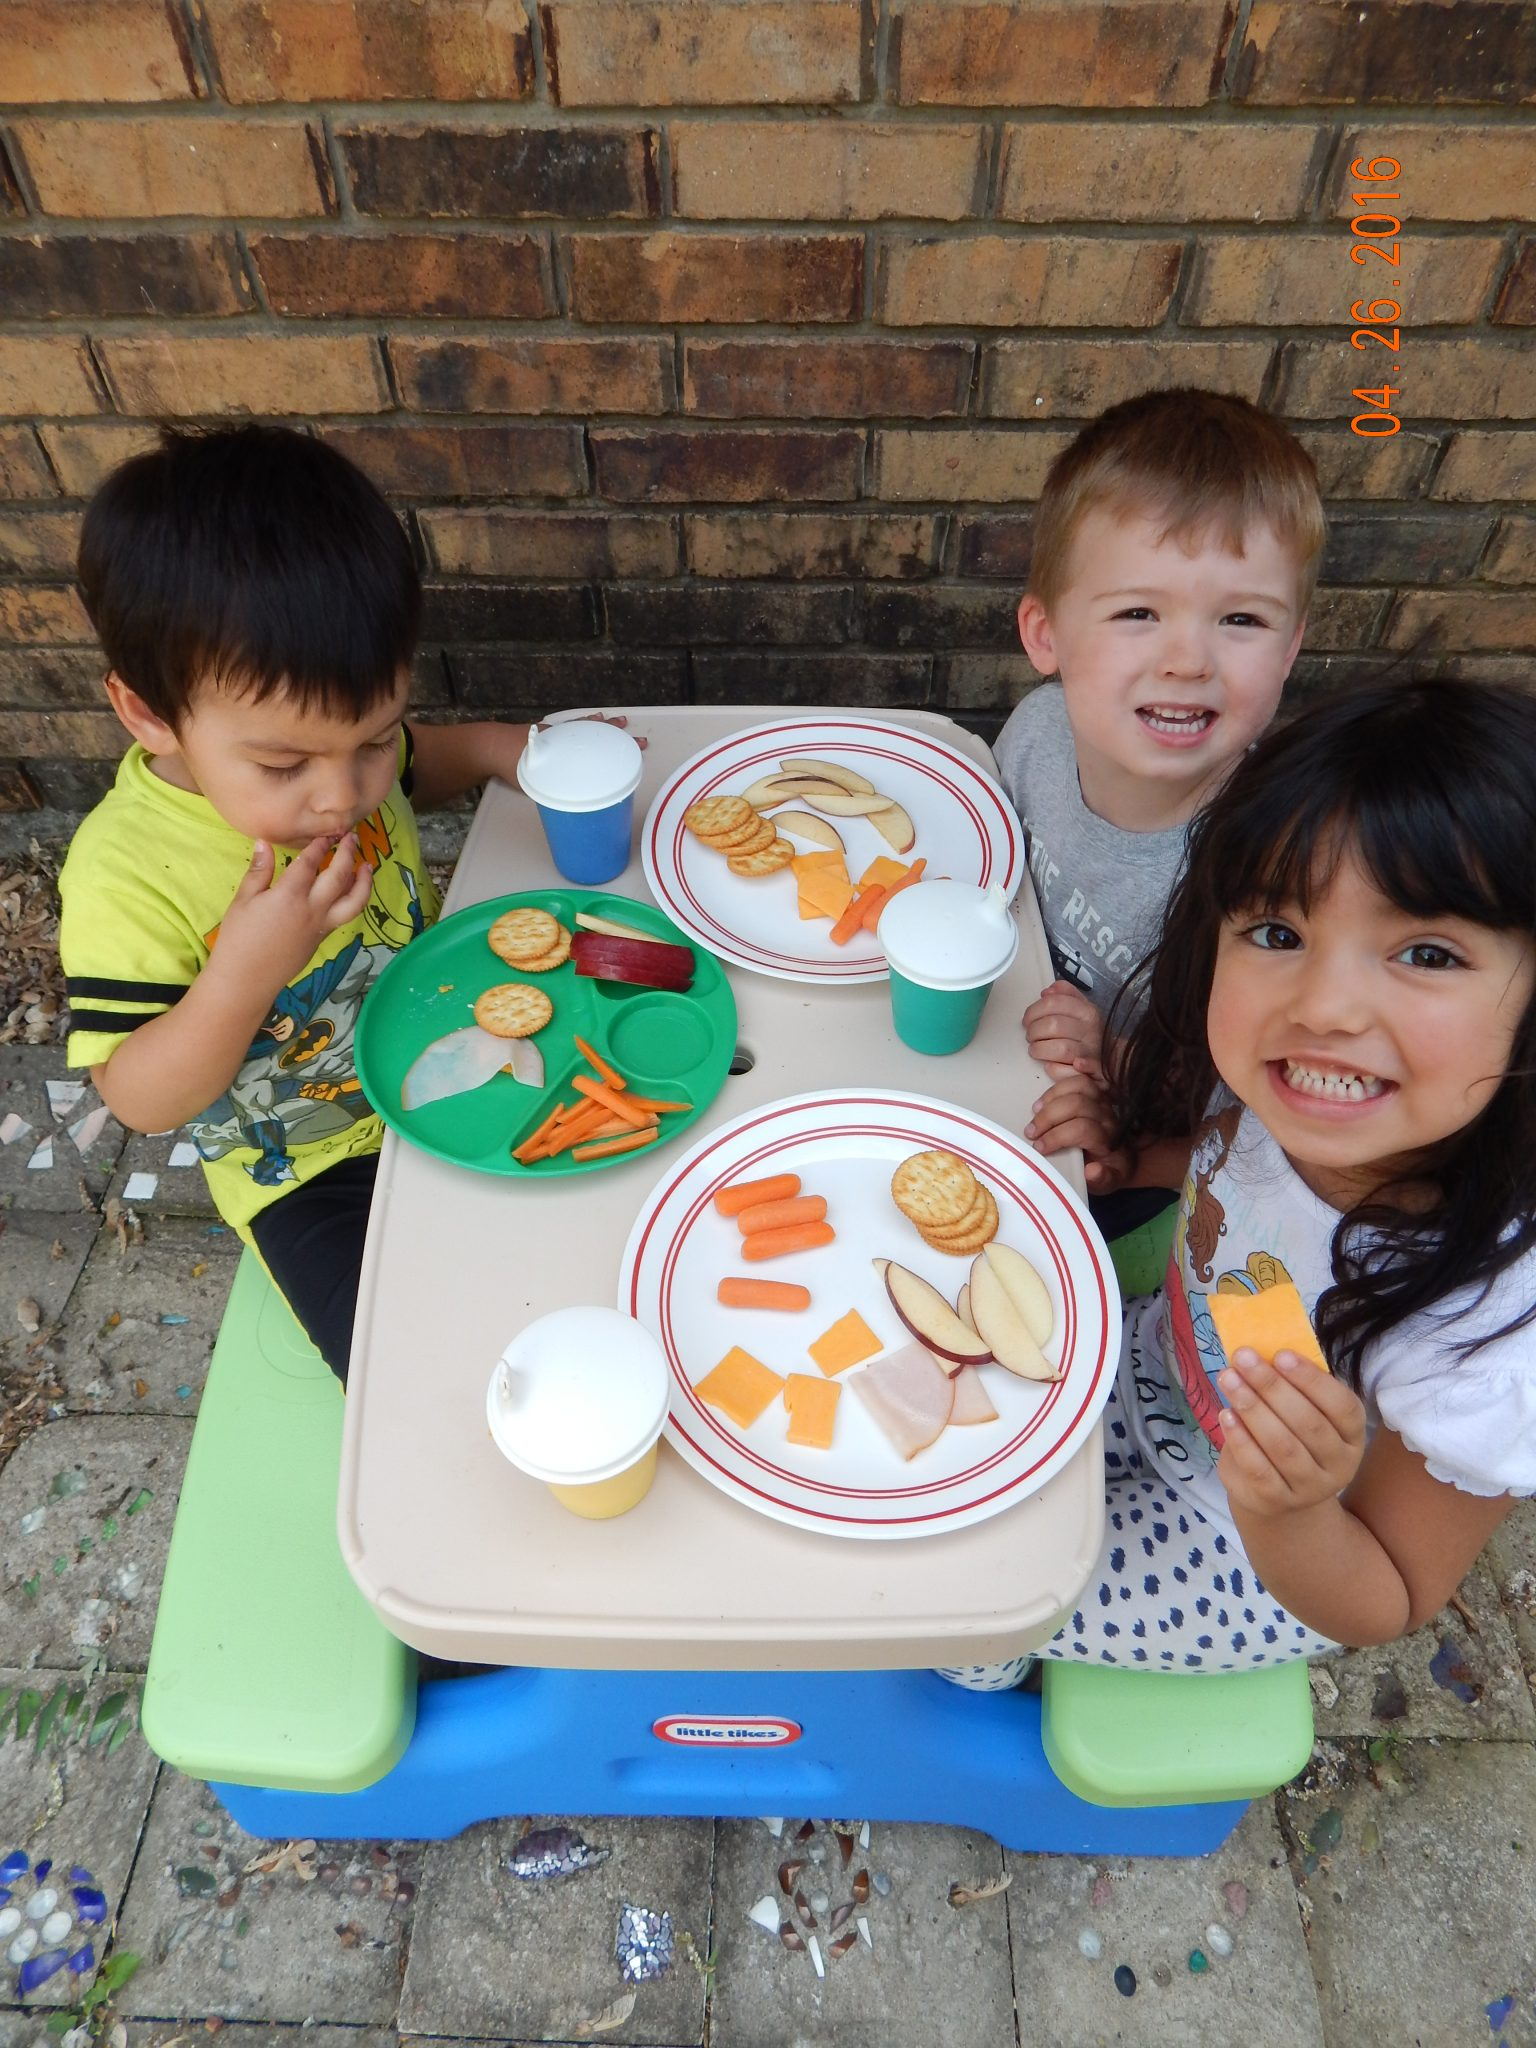 feeding toddlers healthy food for lunch, three kids sitting at a picnic table with plates of healthy food. They are eating and smiling.